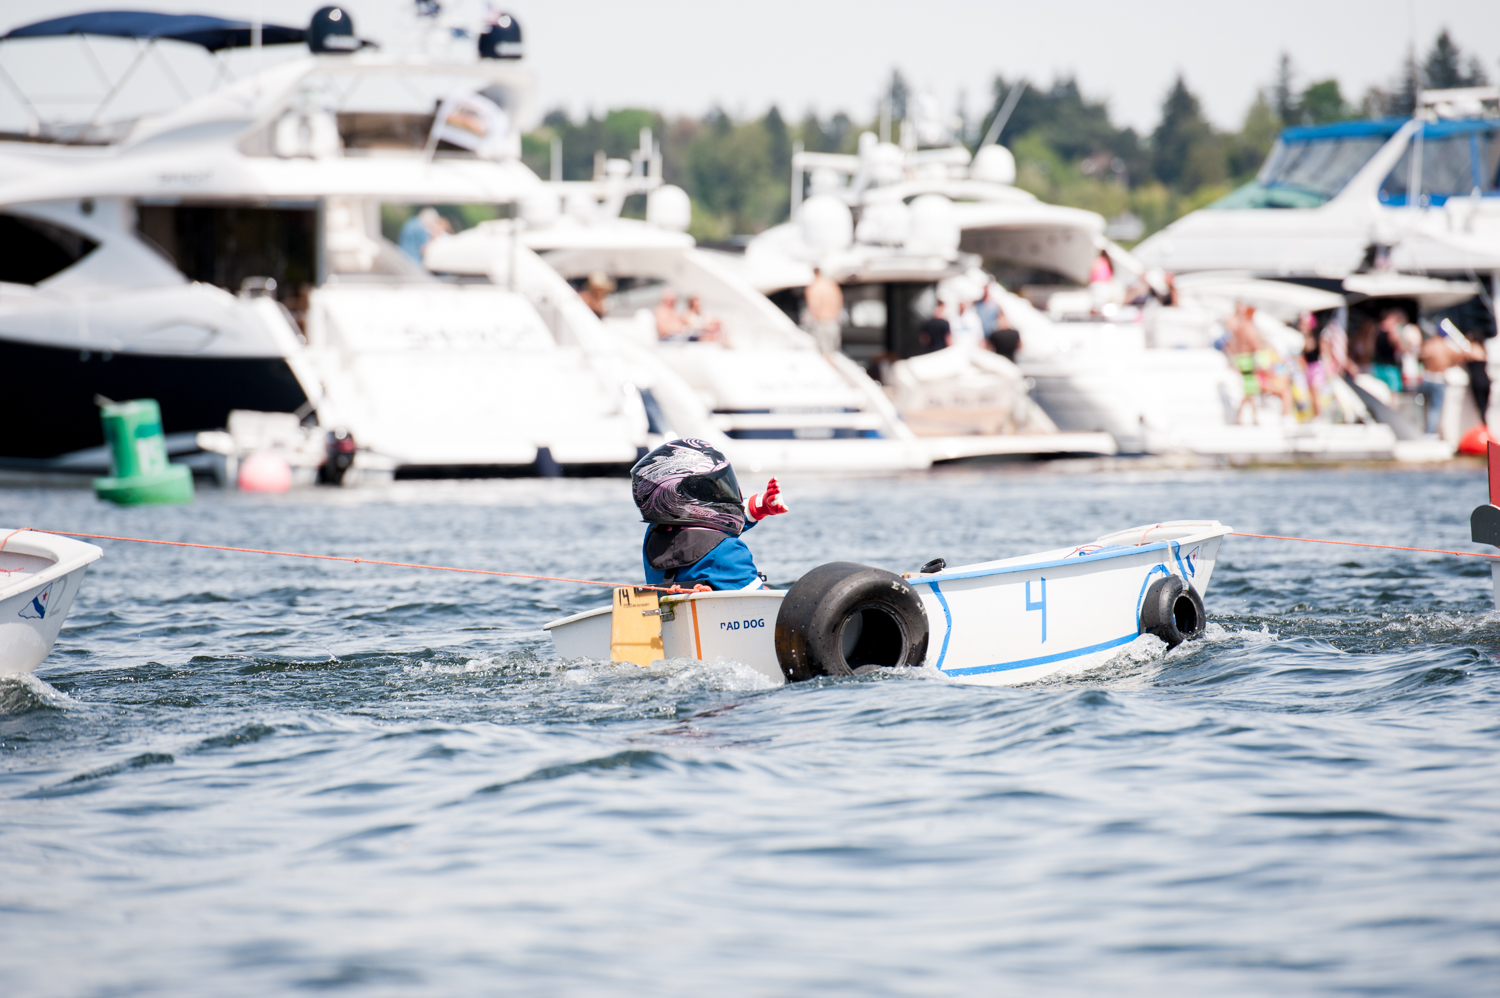 <p>Seattle Yacht Club Opening Day is always the first Saturday in May, and marked with by the Windermere Cup crew races, sailboat races and the Opening Day Parade. It's easily become the nation's largest regional celebration of water, spring and the opening of boating season. (Image: Elizabeth Crook / Seattle Refined)</p>